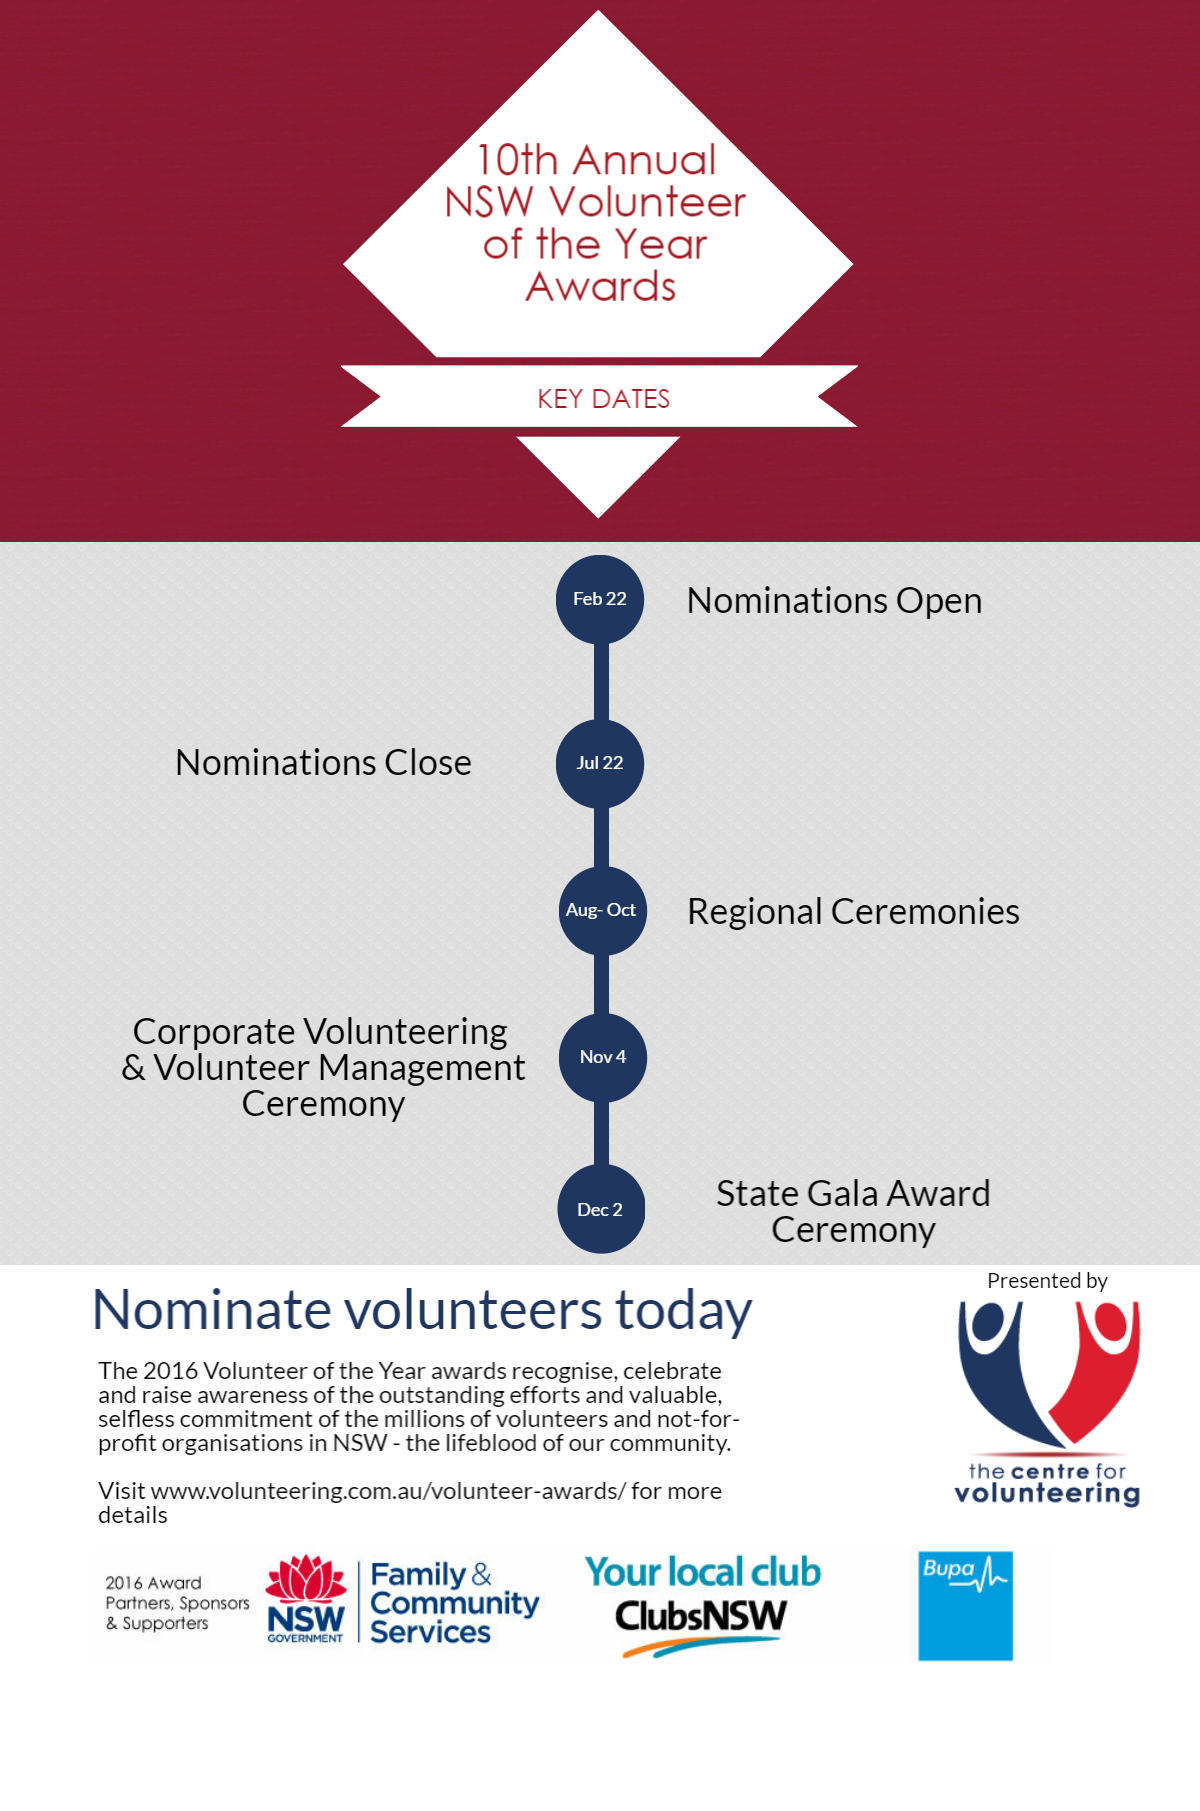 Key Dates for the 10th Annual NSW Volunteer of the Year Awards.